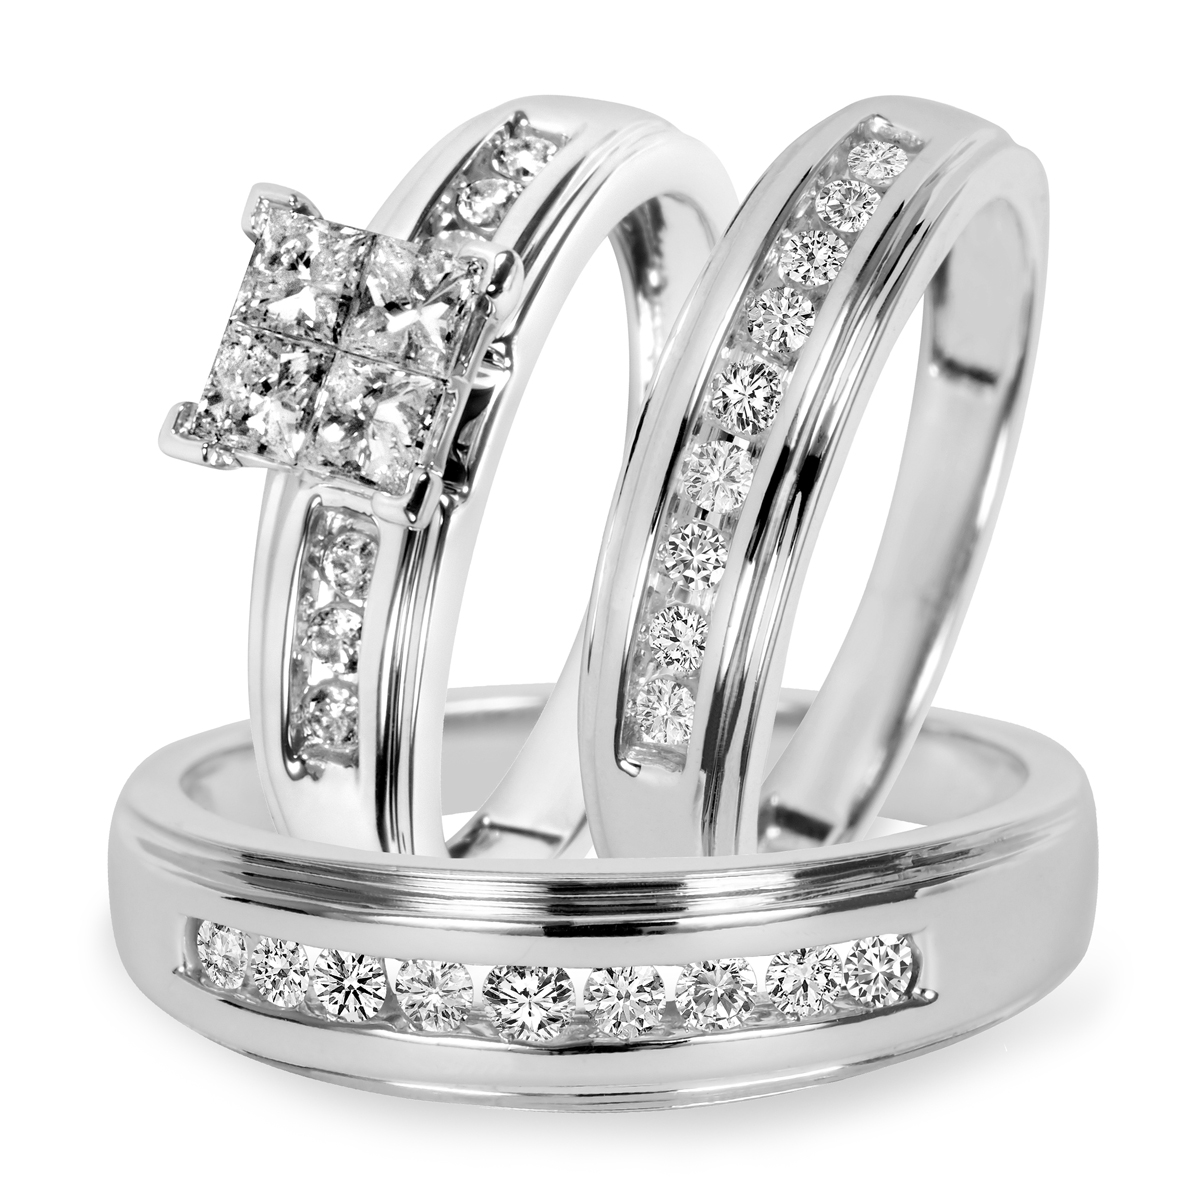 1 Carat T.W. Diamond Trio Matching Wedding Ring Set 10K White Gold